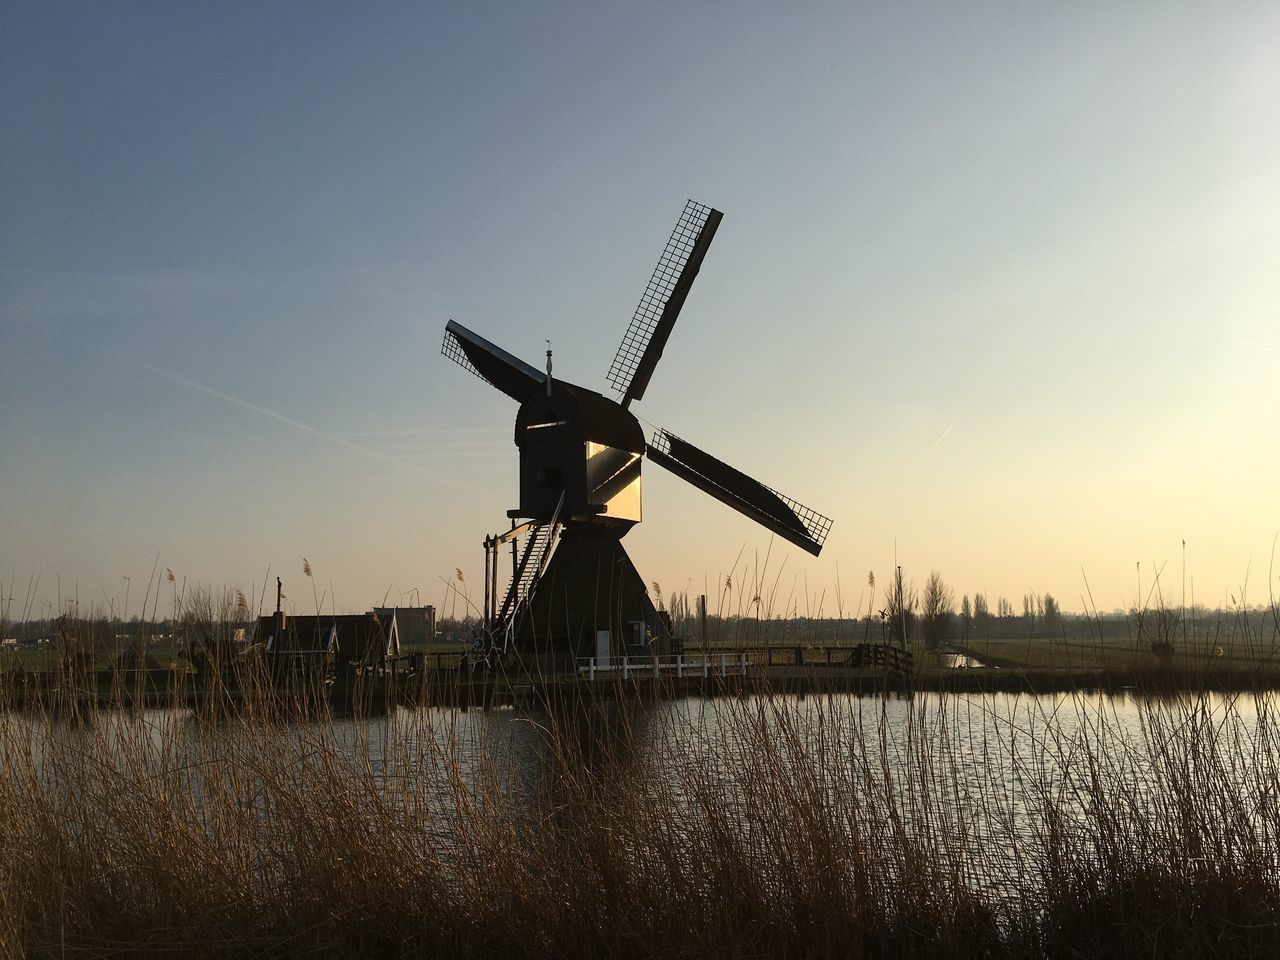 Alternative Energy Fuel And Power Generation Windmill Renewable Energy Traditional Windmill Wind Power Environmental Conservation Water Wind Turbine Nature Rural Scene Sky Sunset Beauty In Nature Lake Built Structure No People Reed - Grass Family Outdoors Architecture